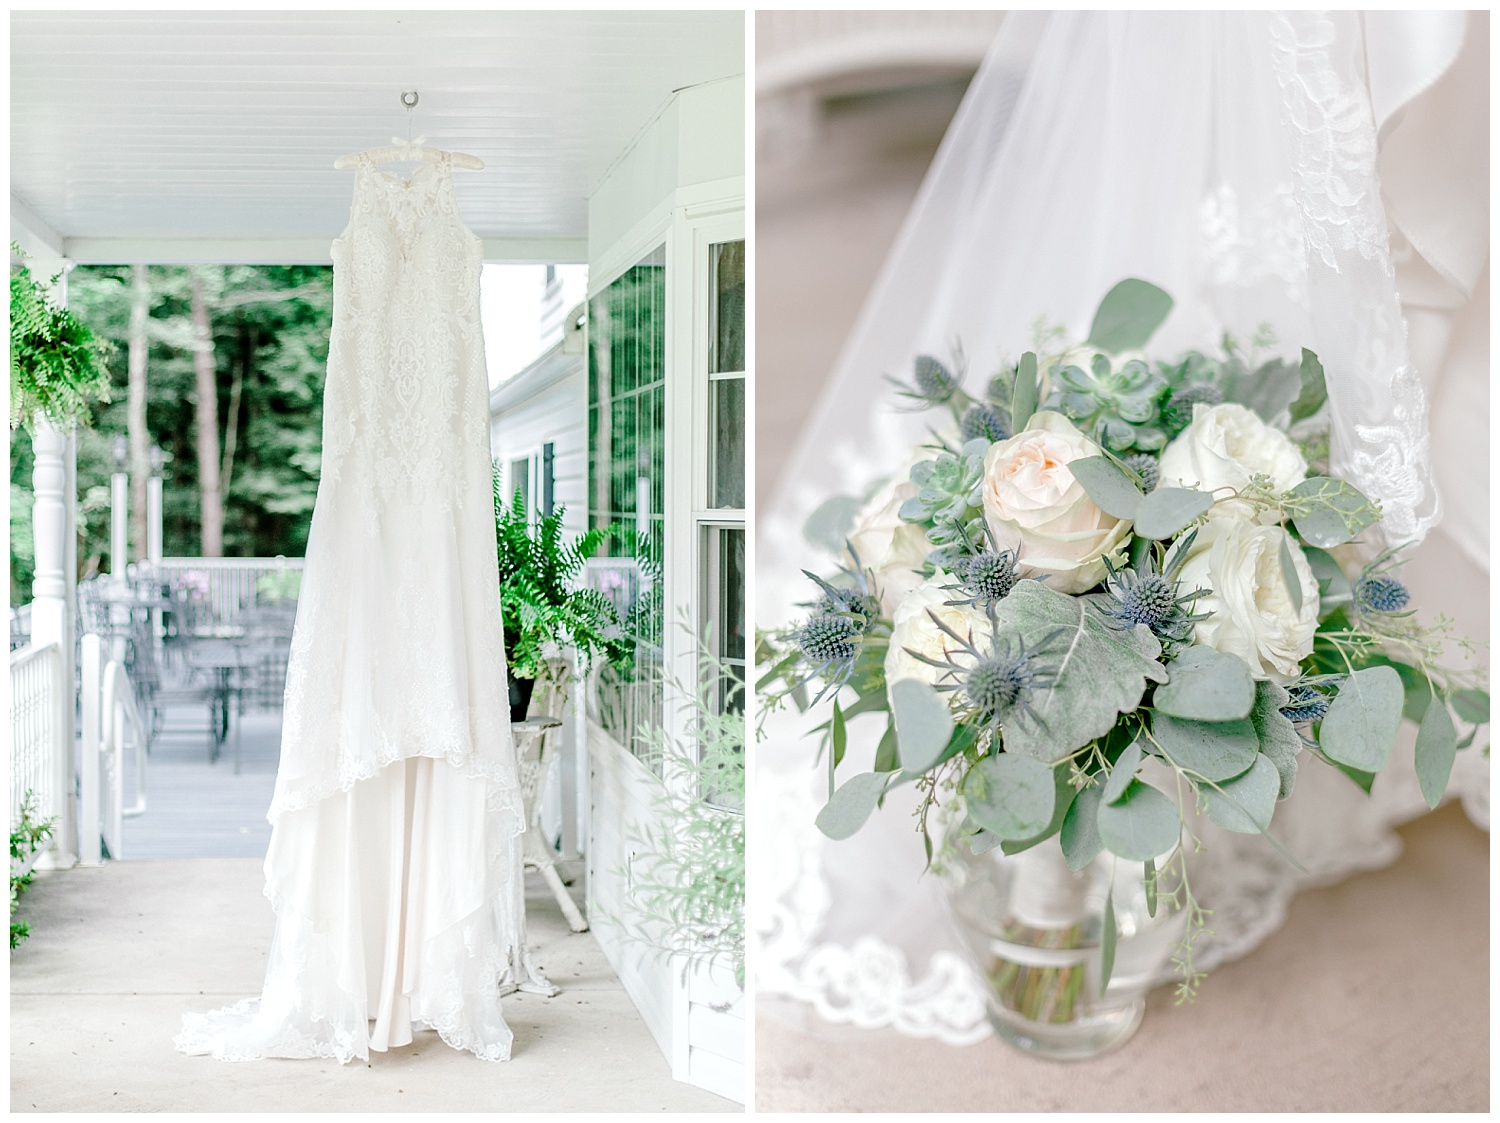 Navy and Blush pink inspired summertime whitewoods wedding in Northeastern Pennsylvania NEPA wapwallopen wedding venue by  PA based wedding and lifestyle photographer Lytle photography_0004.jpg